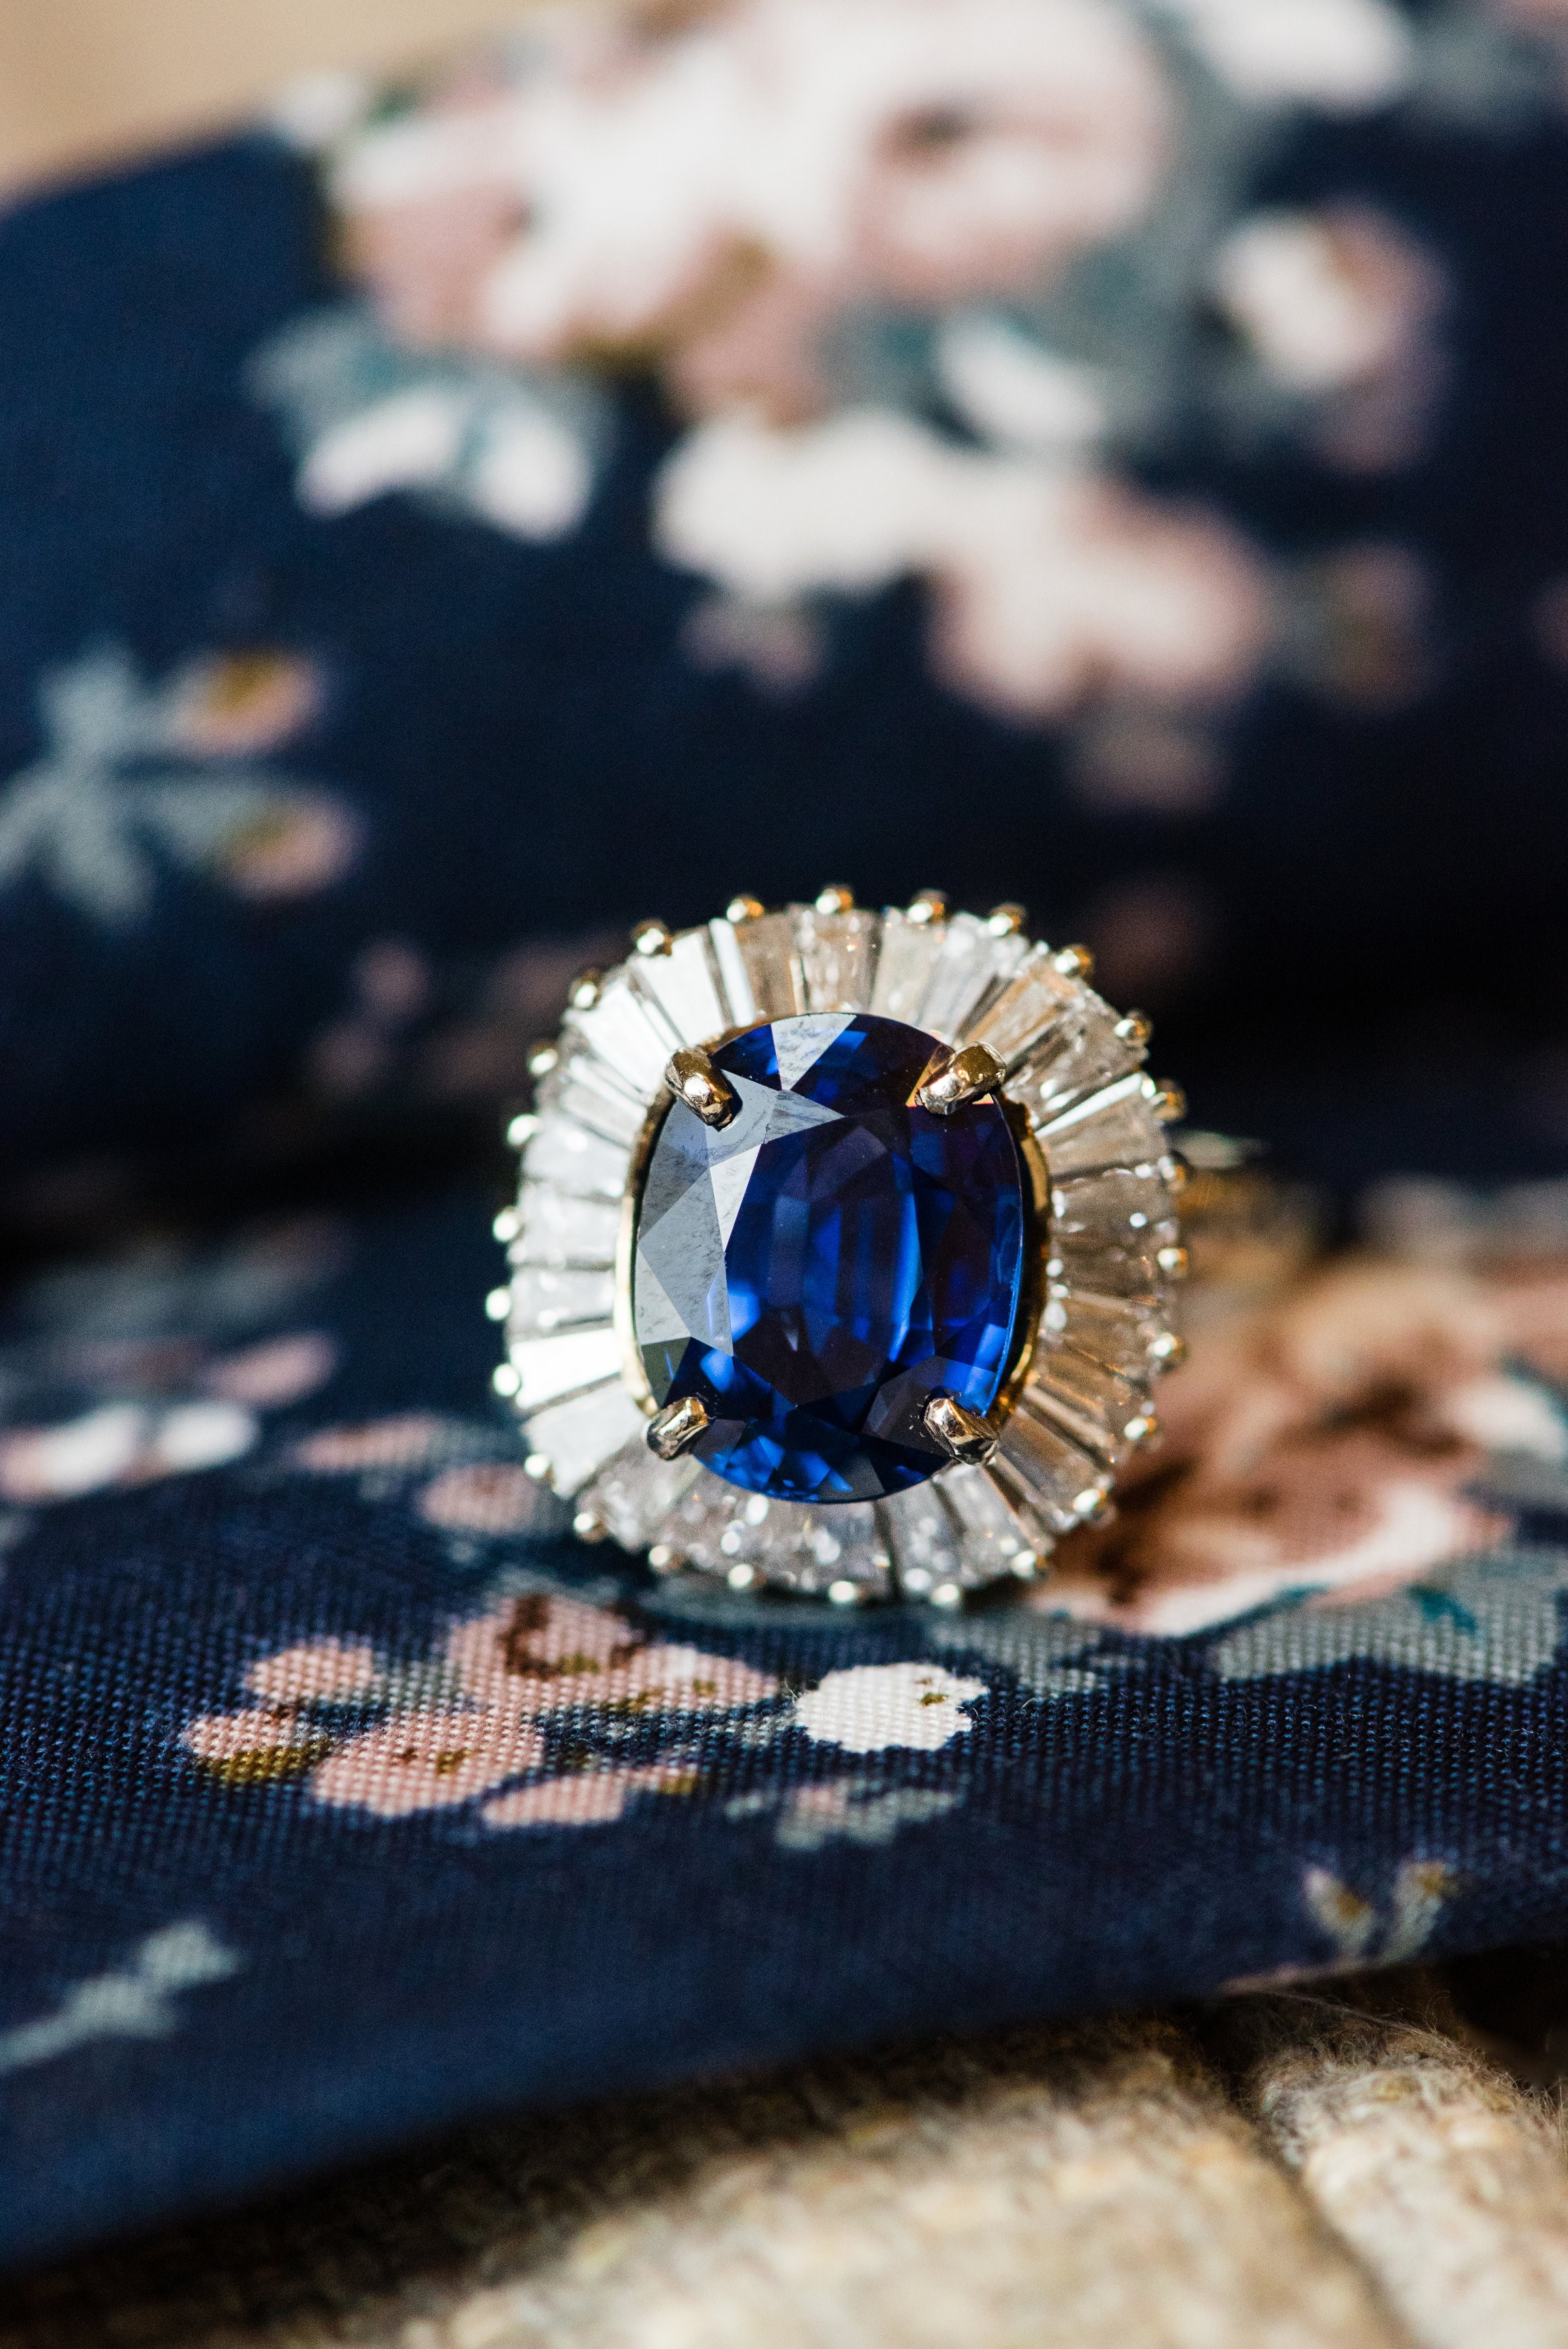 A decadent 4.25 carat blue sapphire set in a feminine ballerina style mounting comprised of 1.00 carats of baguette cut diamonds! Shop this show stopper  HERE .   Photography by Ivory Door Studio.